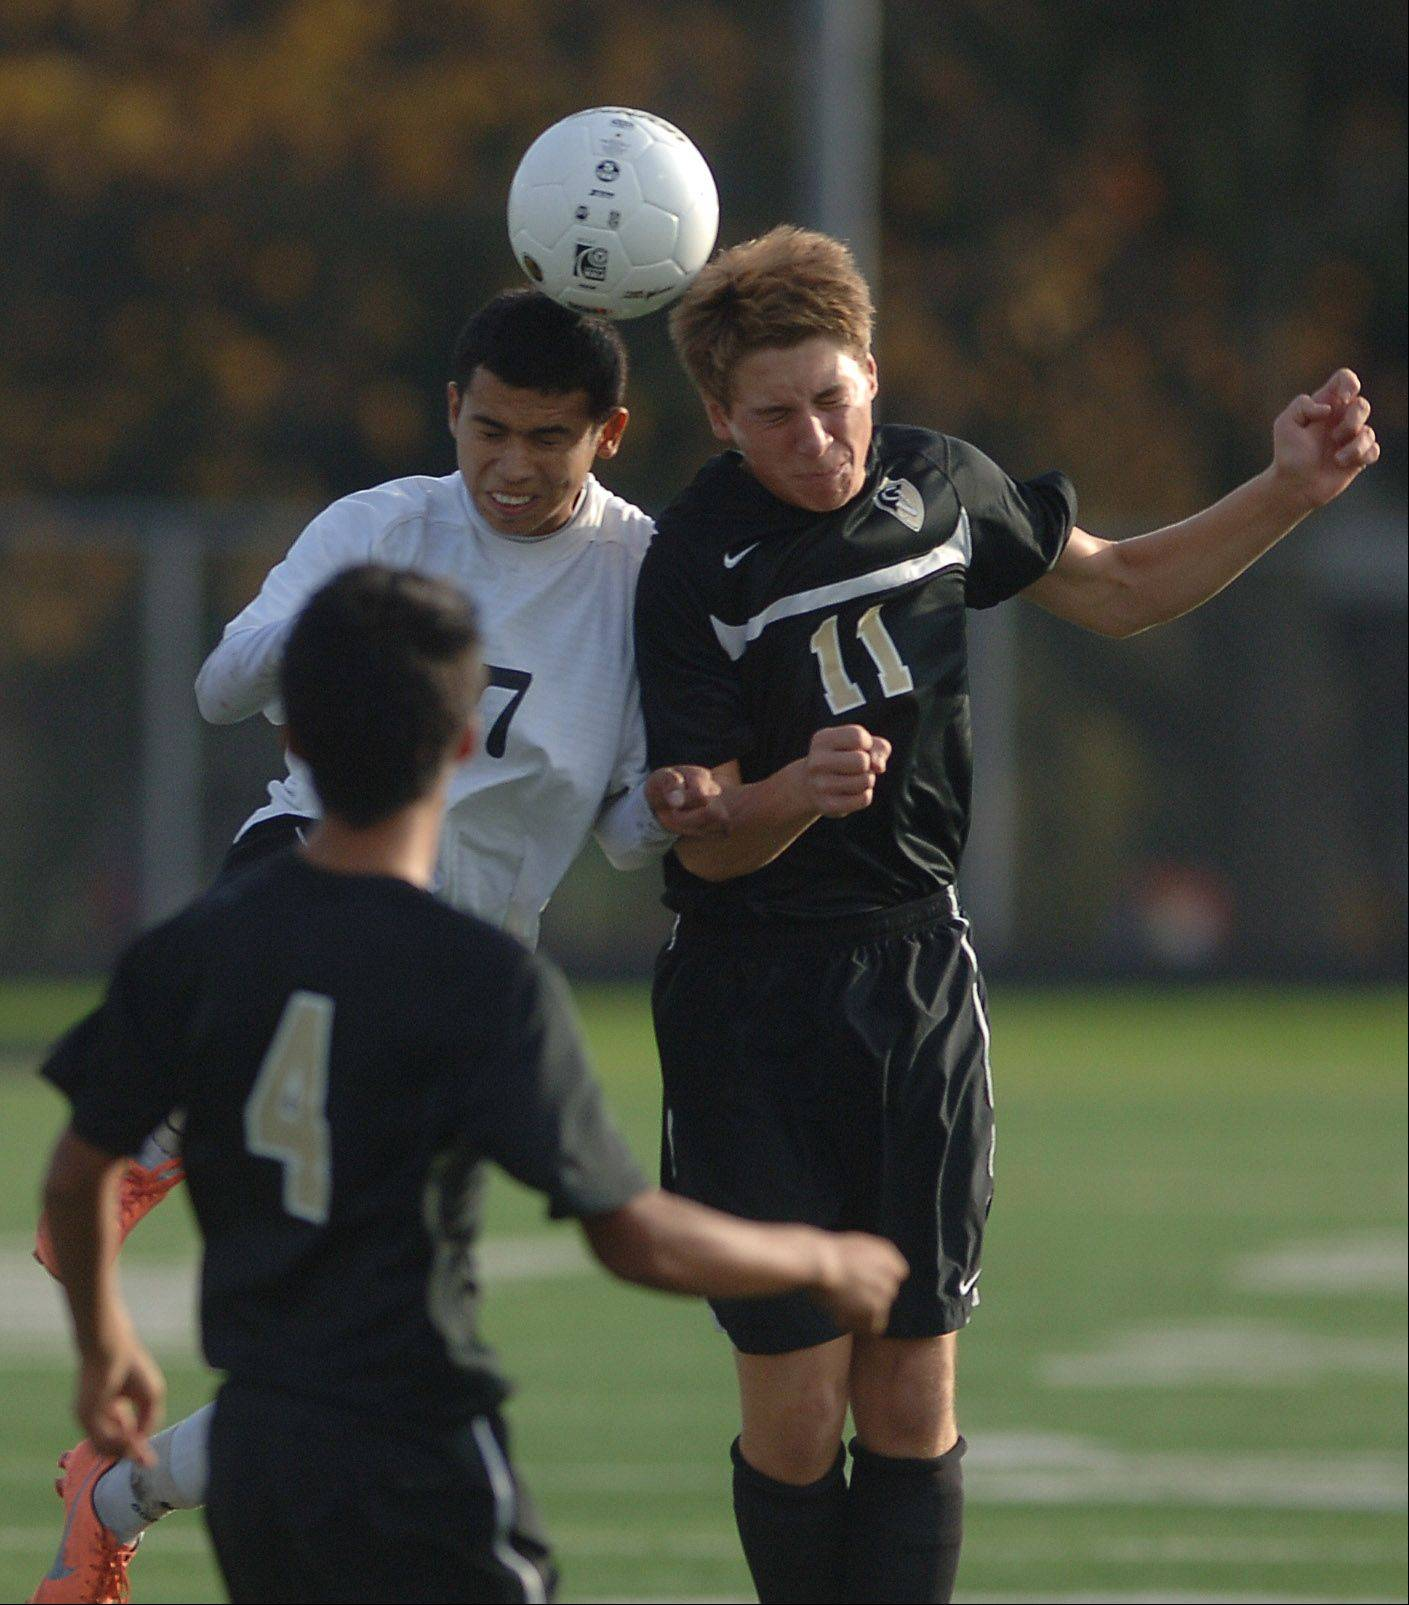 Harvard's Christian Carrillo and Grayslake North's Colin Grever (11) compete for the header during the Class 2A soccer sectional semifinal game Wednesday at Grayslake Central.